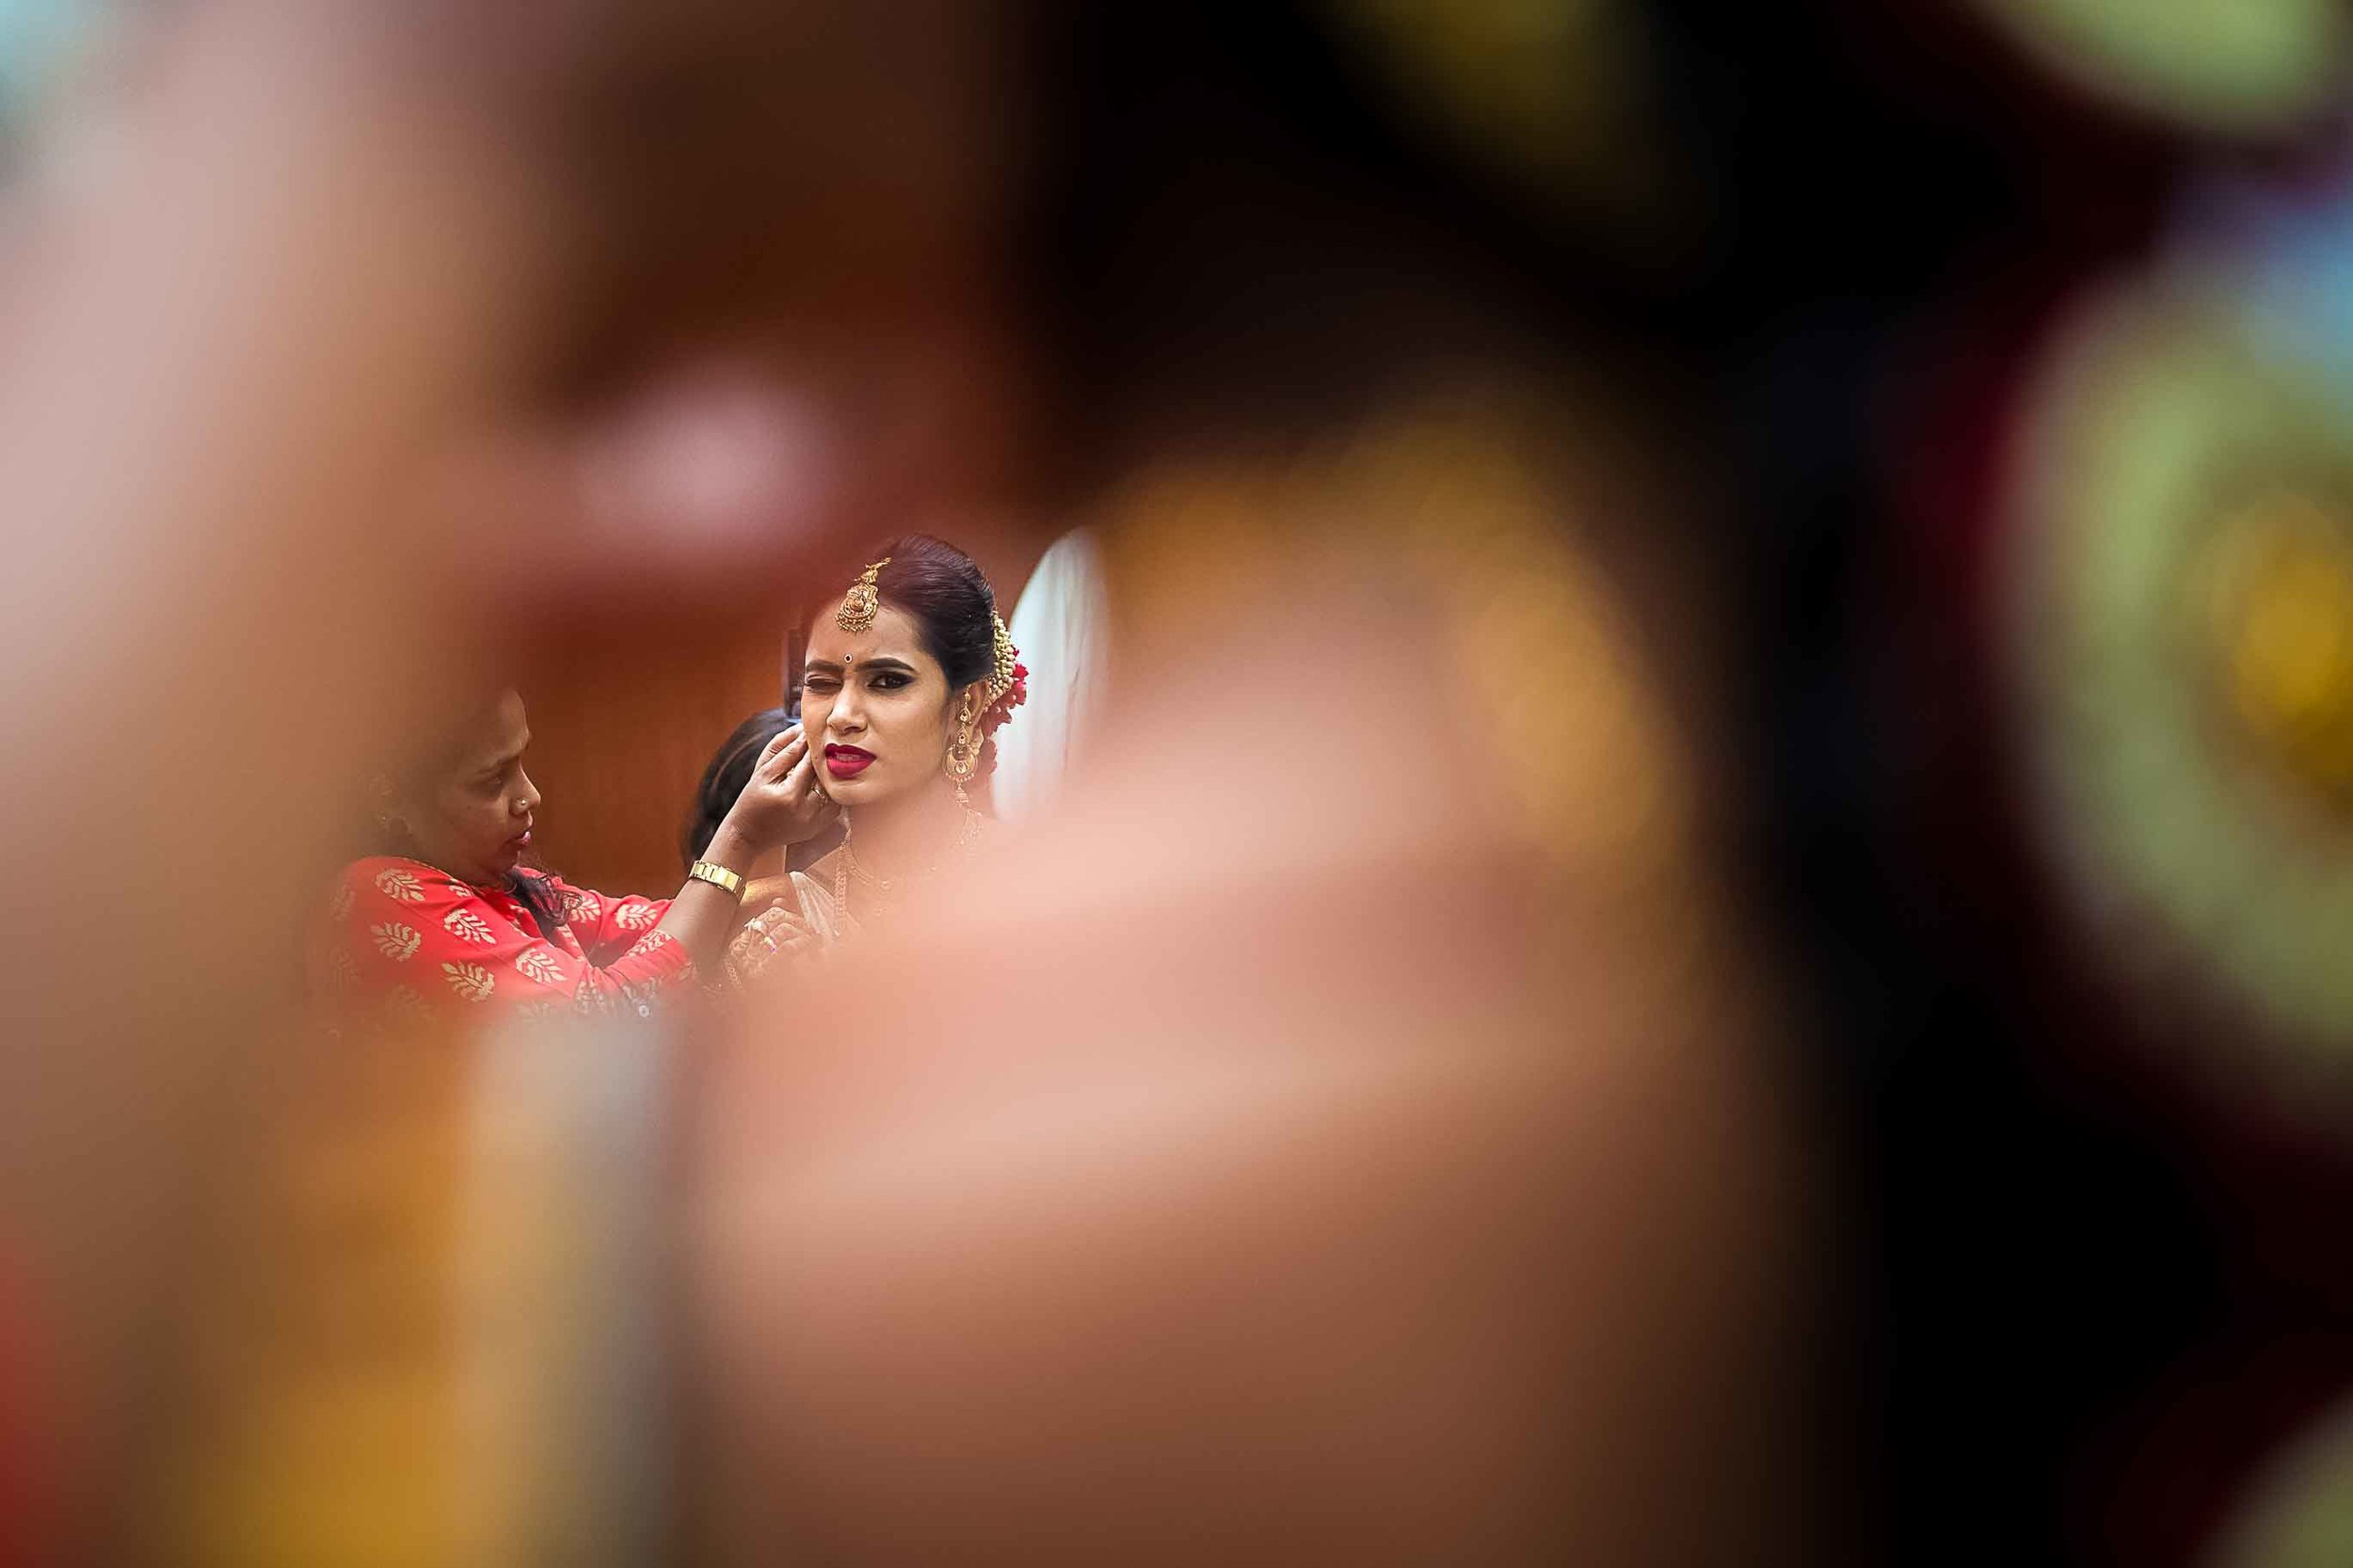 Pixel-Chronicles-Deepti-Nithun-Candid-Wedding-Photography-South-Indian-Wedding-Story-Bride-Getting-Ready-59.jpg